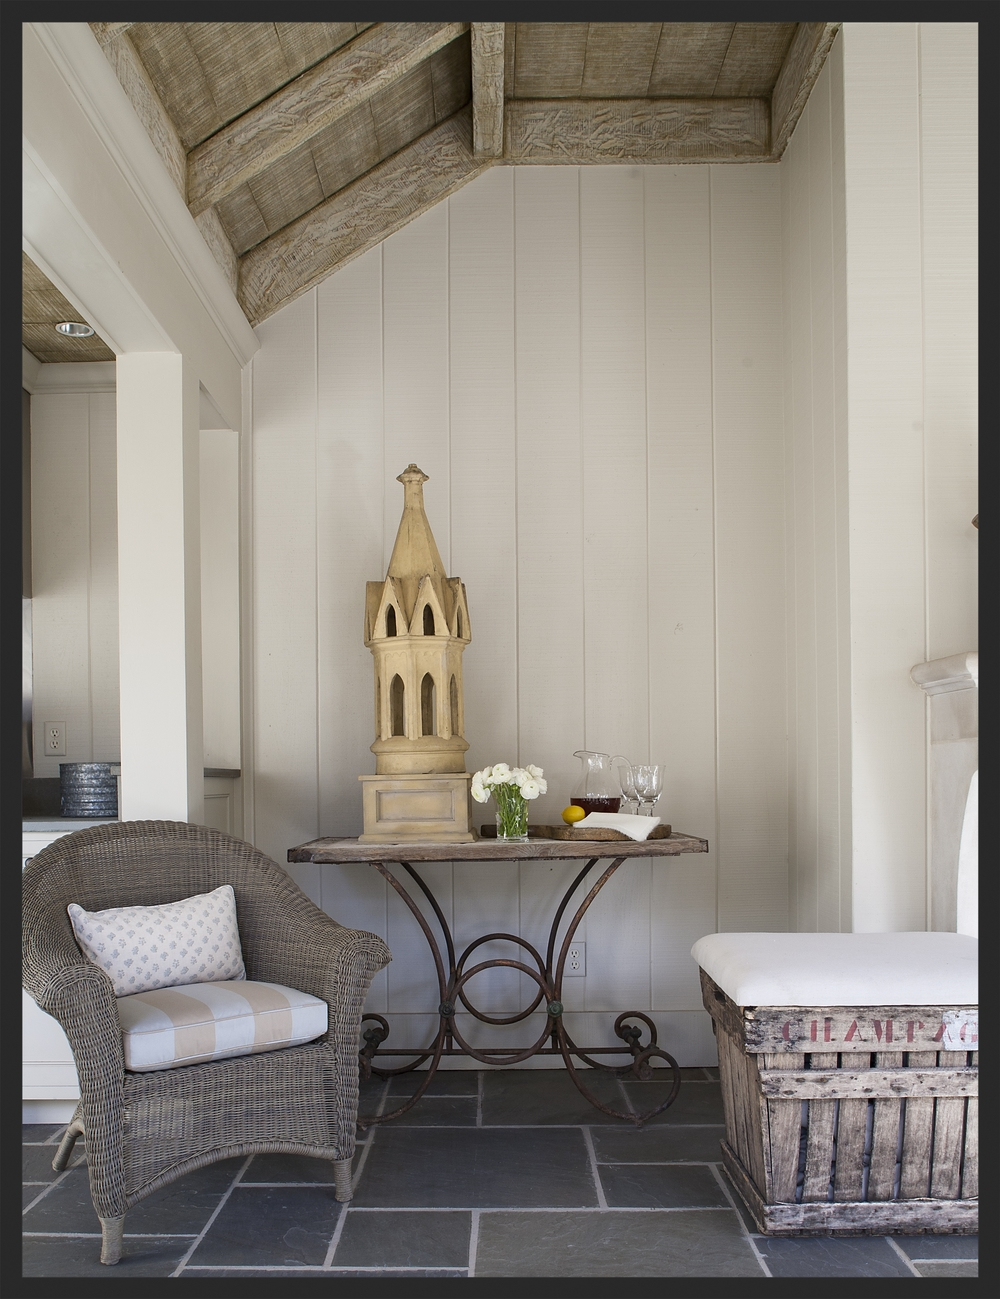 Beautiful painted ceiling by Richard Martin.  Terra cotta chimney pot on French iron table.  Champagne crate.  Linda Kay McCloy - alittleenglishinteriors.com